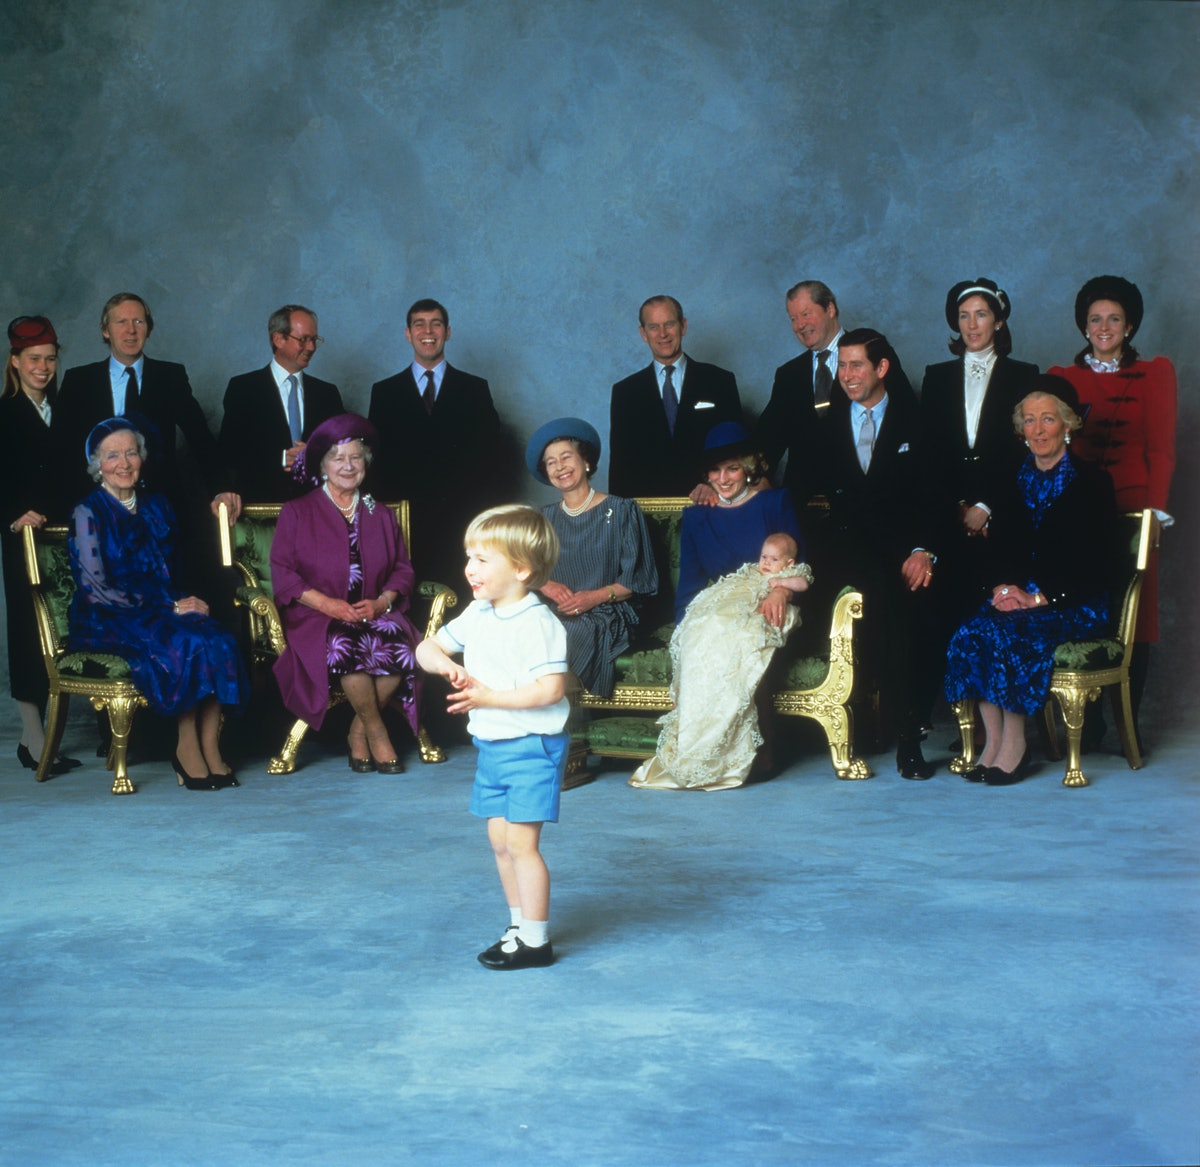 PRINCE HARRY, HENRY OF WALES WITH LARGE GROUP OF ROYAL RELATIVES AND GODPARENTS ON HIS CHRISTENING, AGED THREE MONTHS.   (Photo by PA Images via Getty Images)